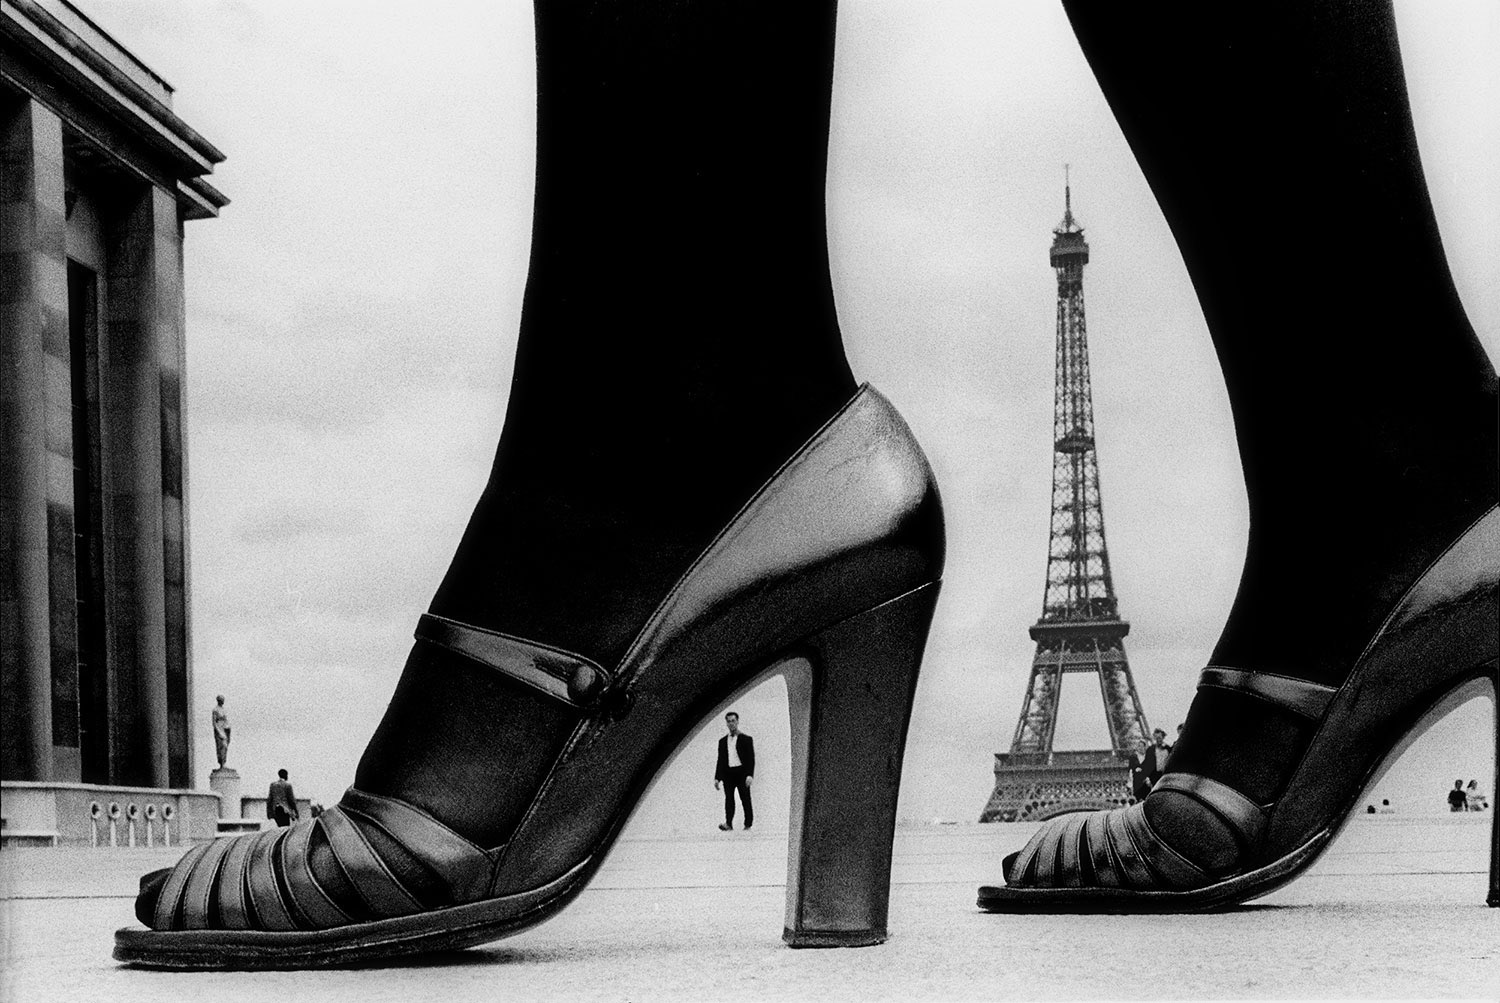 1974-Paris-France-for-STERN-shoes-and-Eiffel-Tower-a